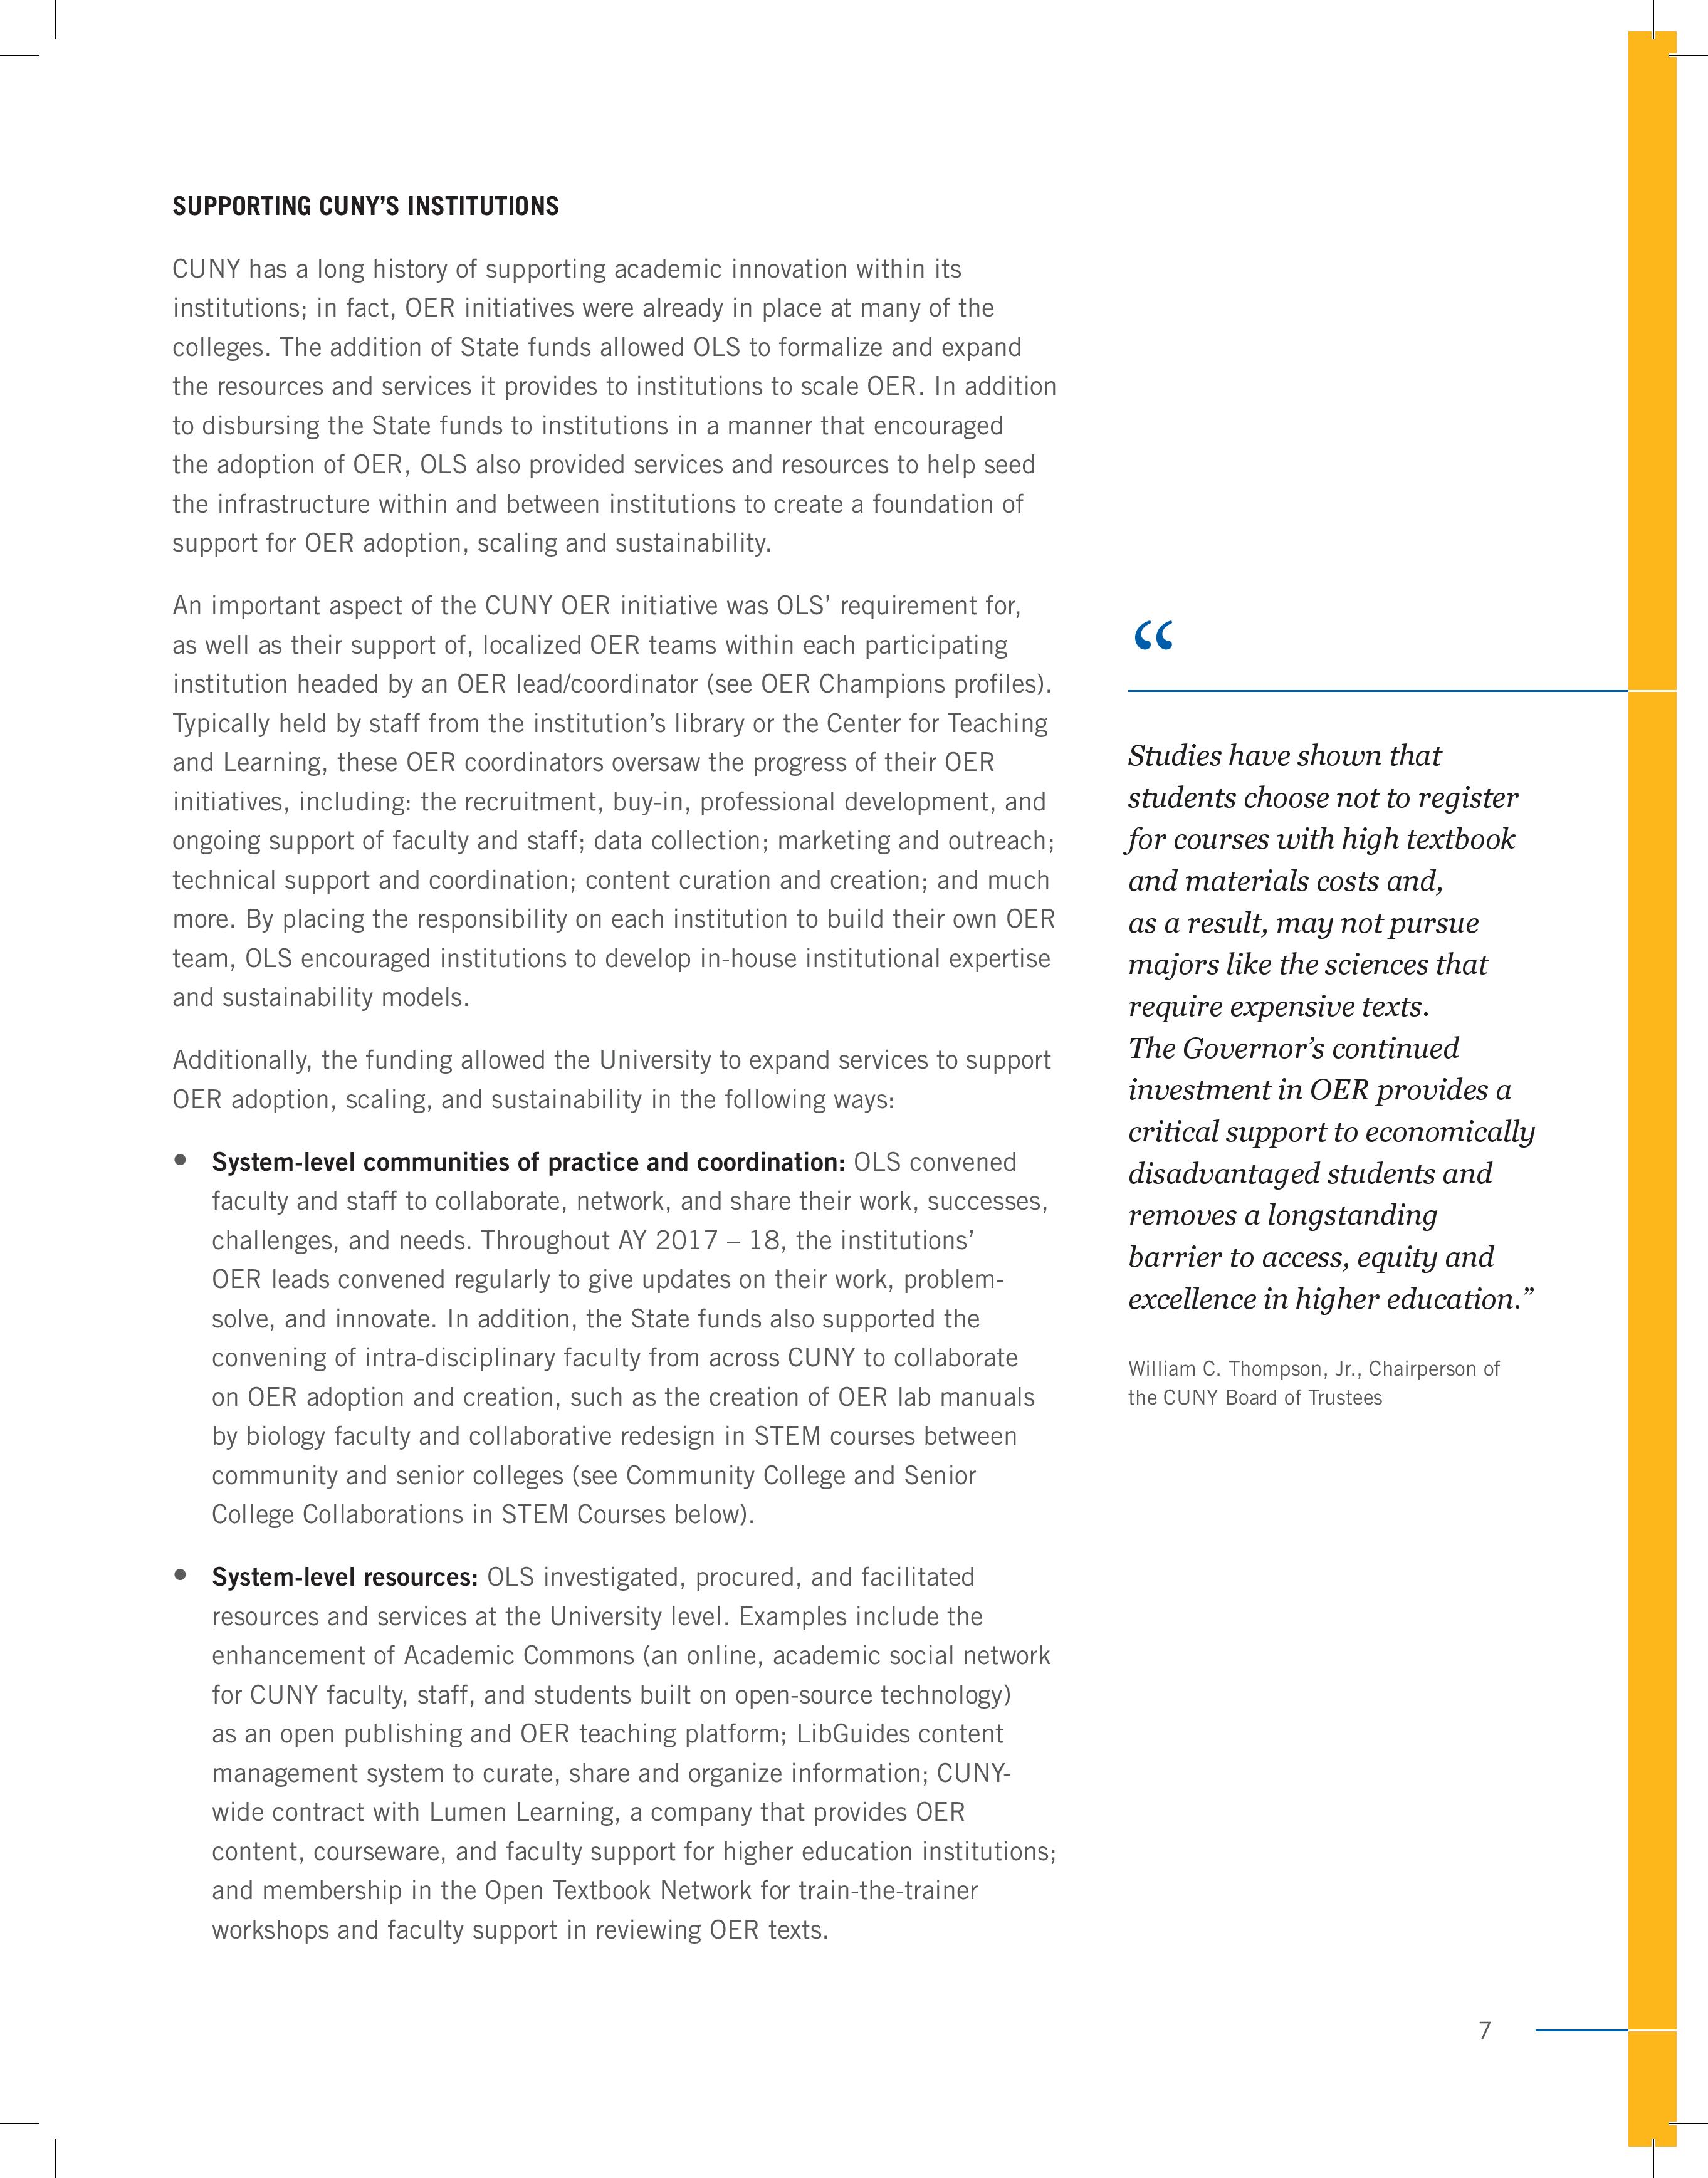 CUNY Report page 7